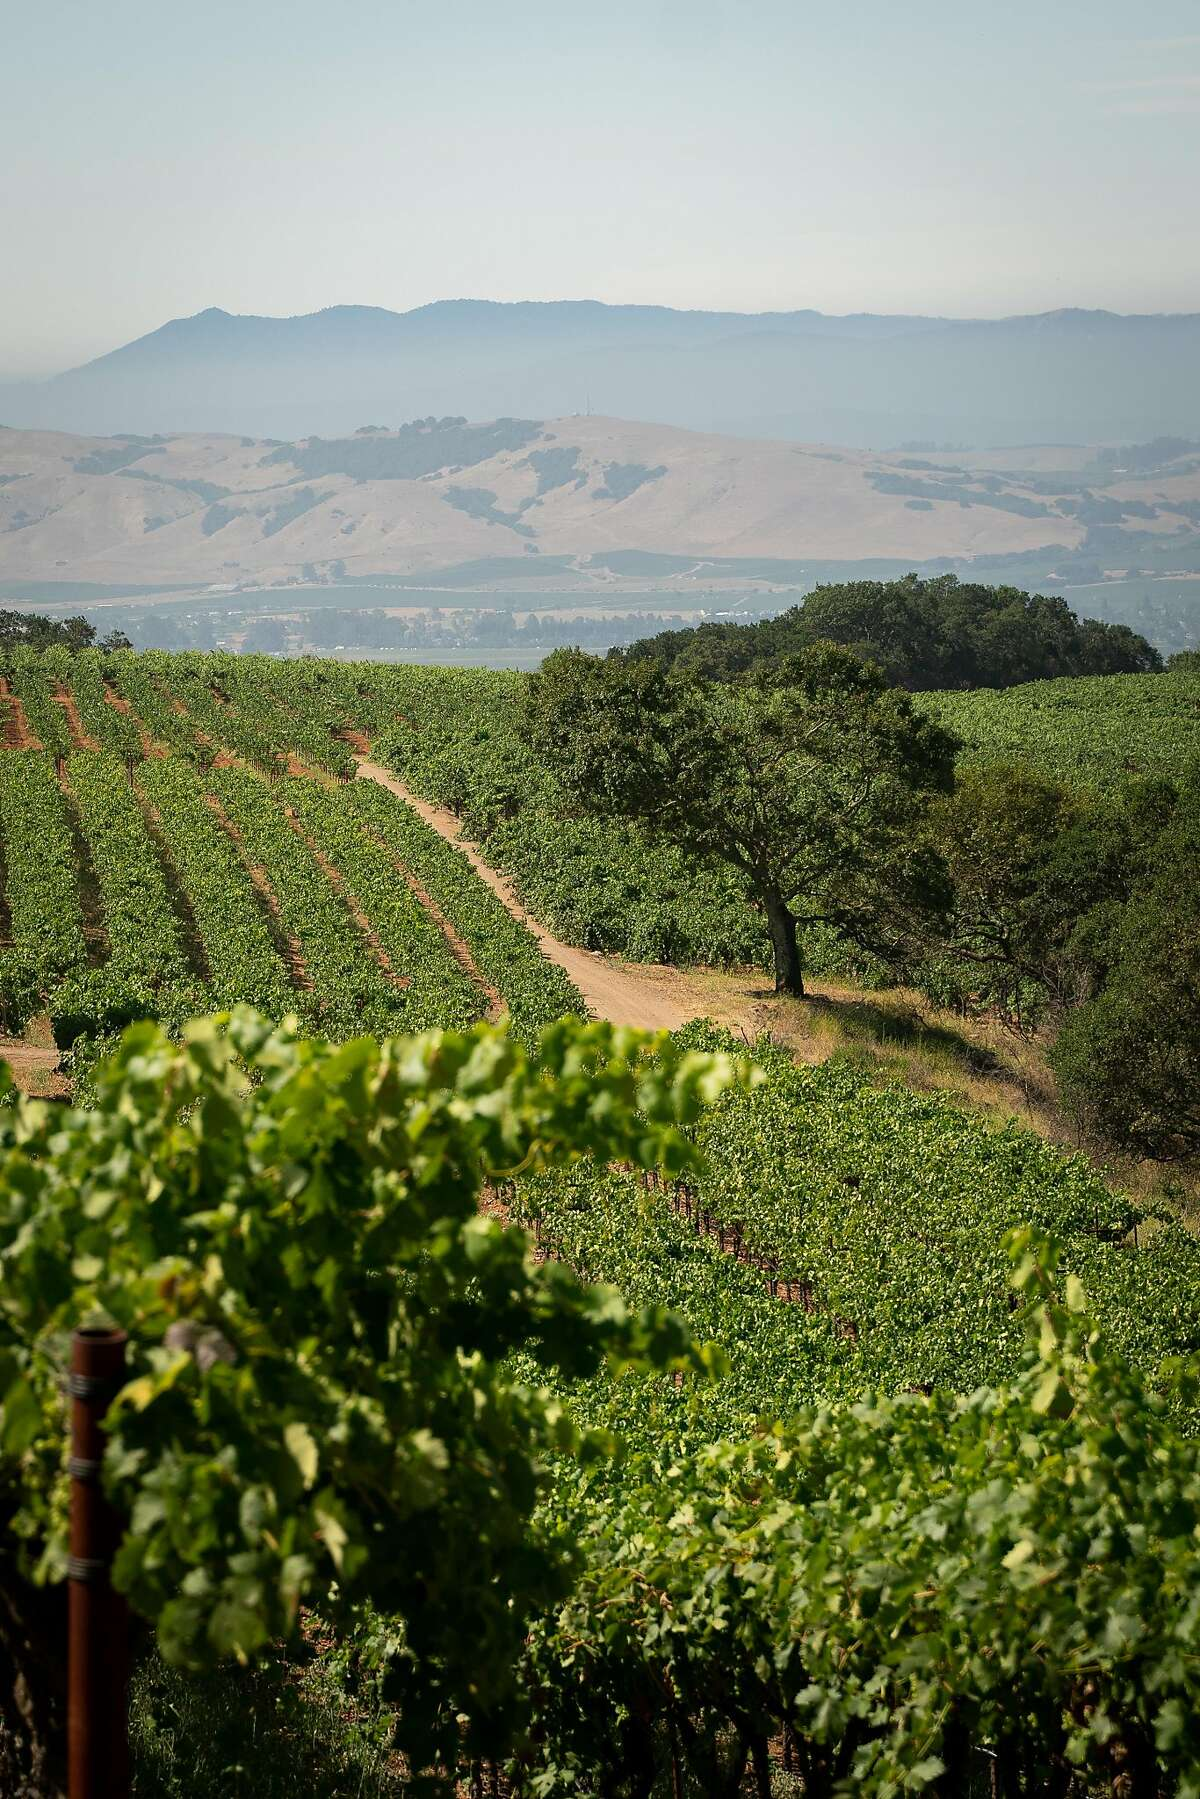 A view of the Sonoma Valley is seen from the top of Monte Rosso Vineyard in Sonoma, Calif., on Thursday, July 25, 2019.